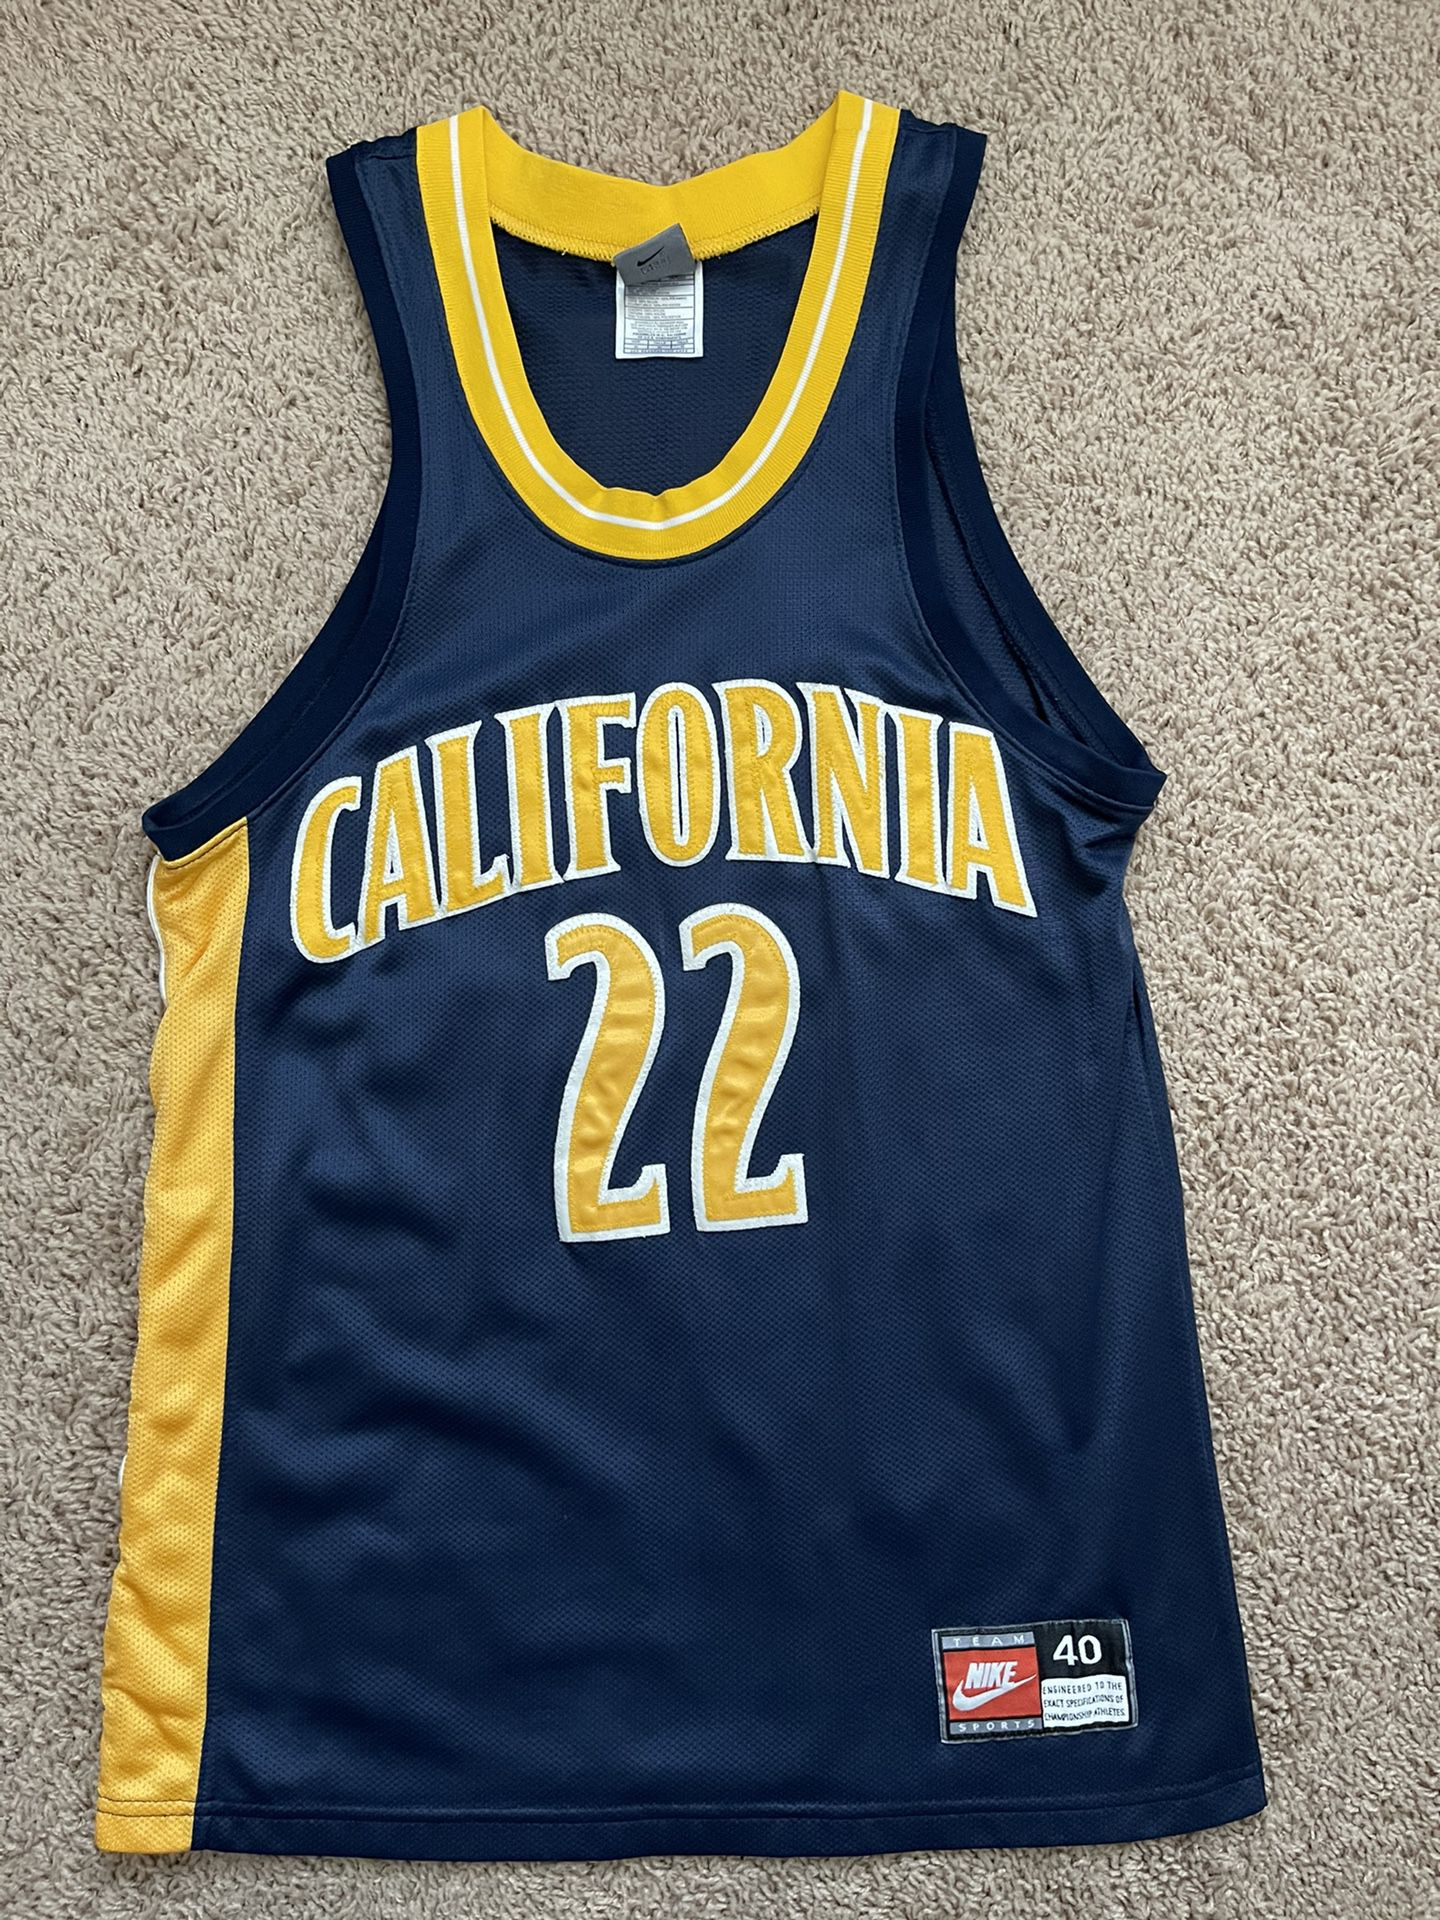 Vintage Cal Berkeley Nike authentic Jersey Size 40